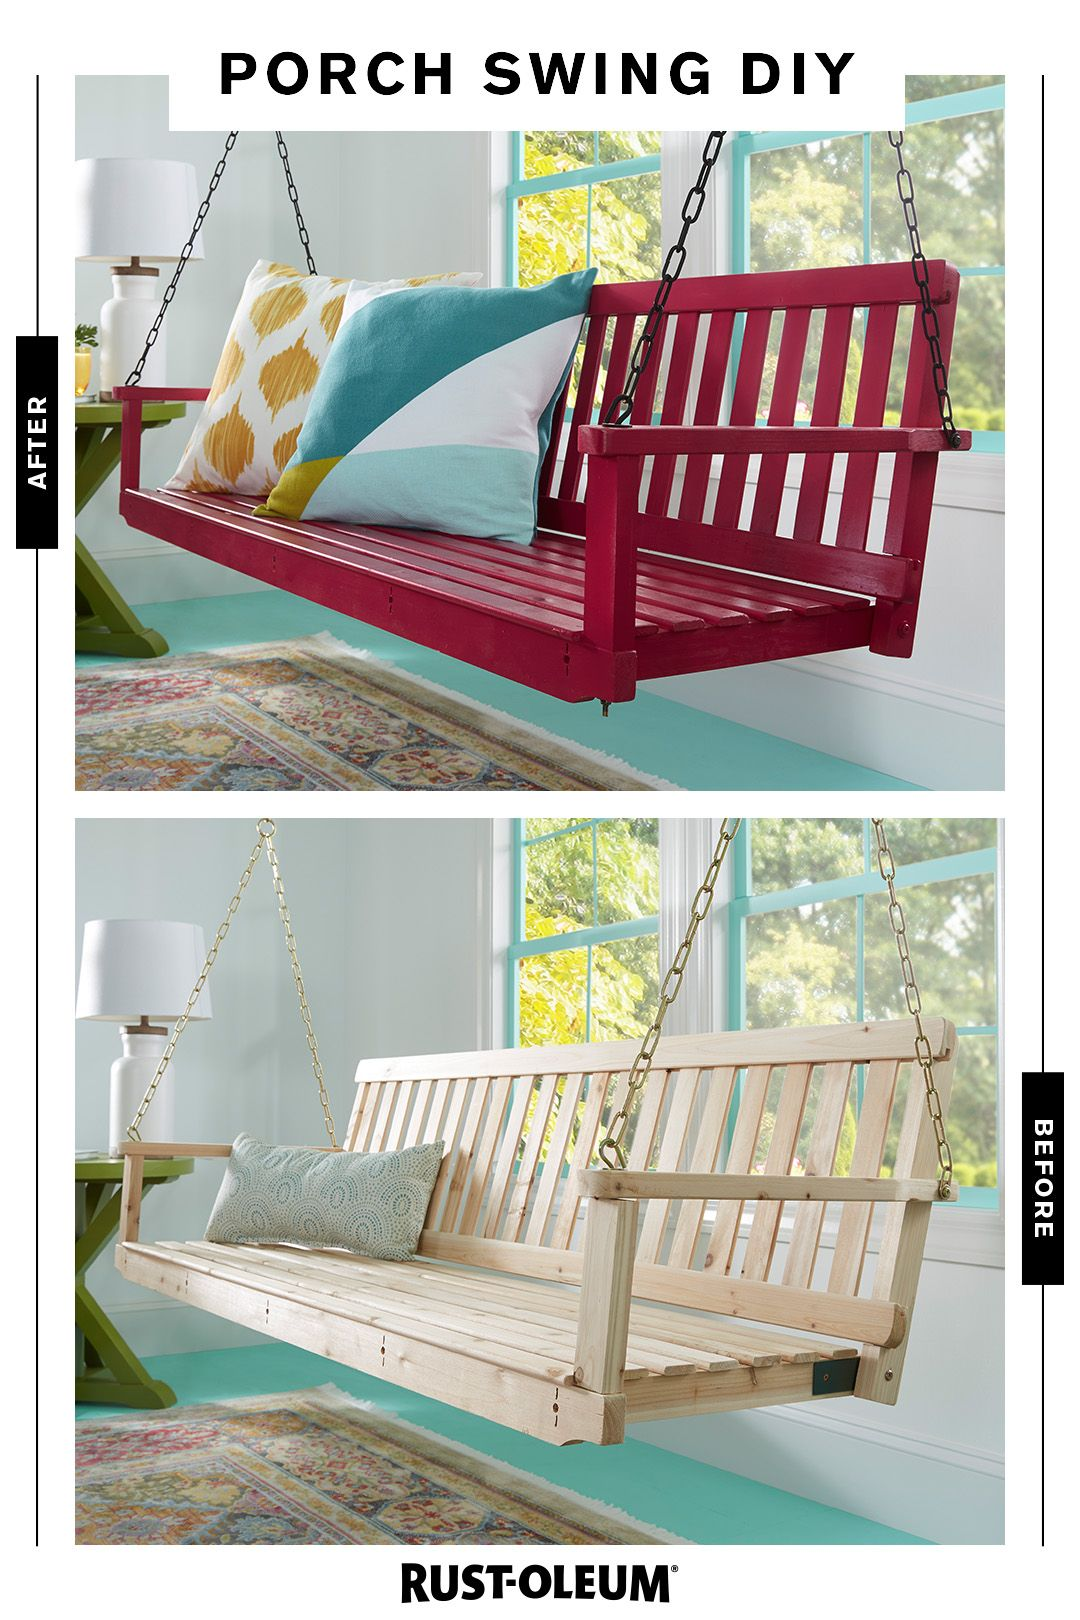 Get Into The Swing Of Summer With A Porch Swing And Some Rust Oleum Spray Paint Prideinthemaking Porch Swing Porch Decorating Backyard Diy Projects